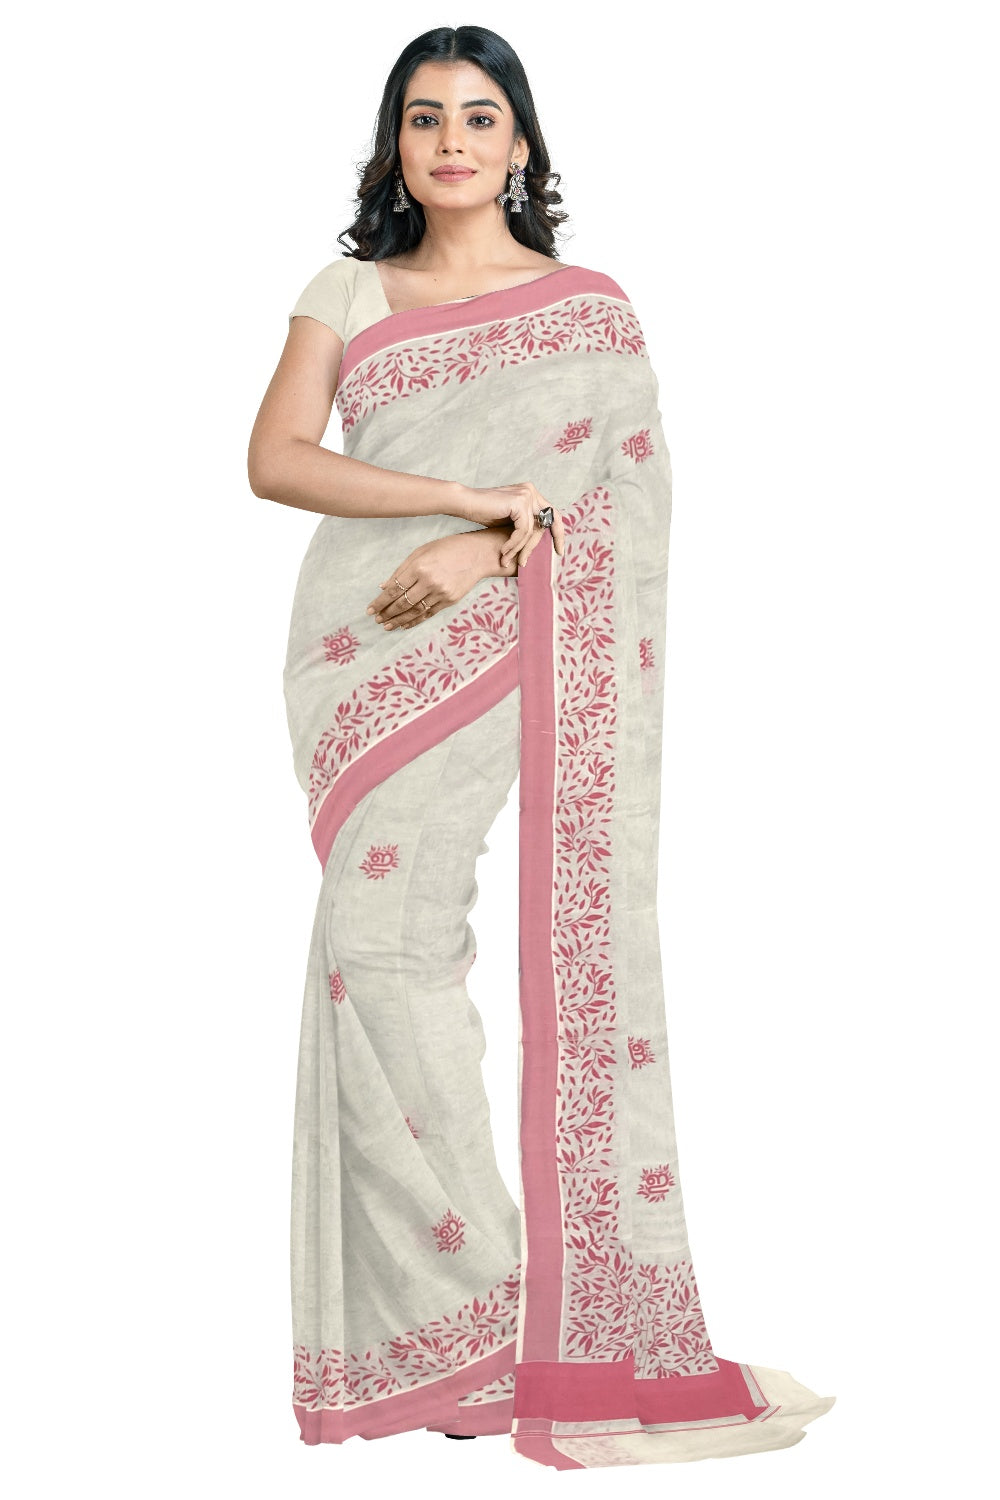 Southloom Pink Border Kerala Saree with Malayalam Themed Prints (by Govt of Kerala)